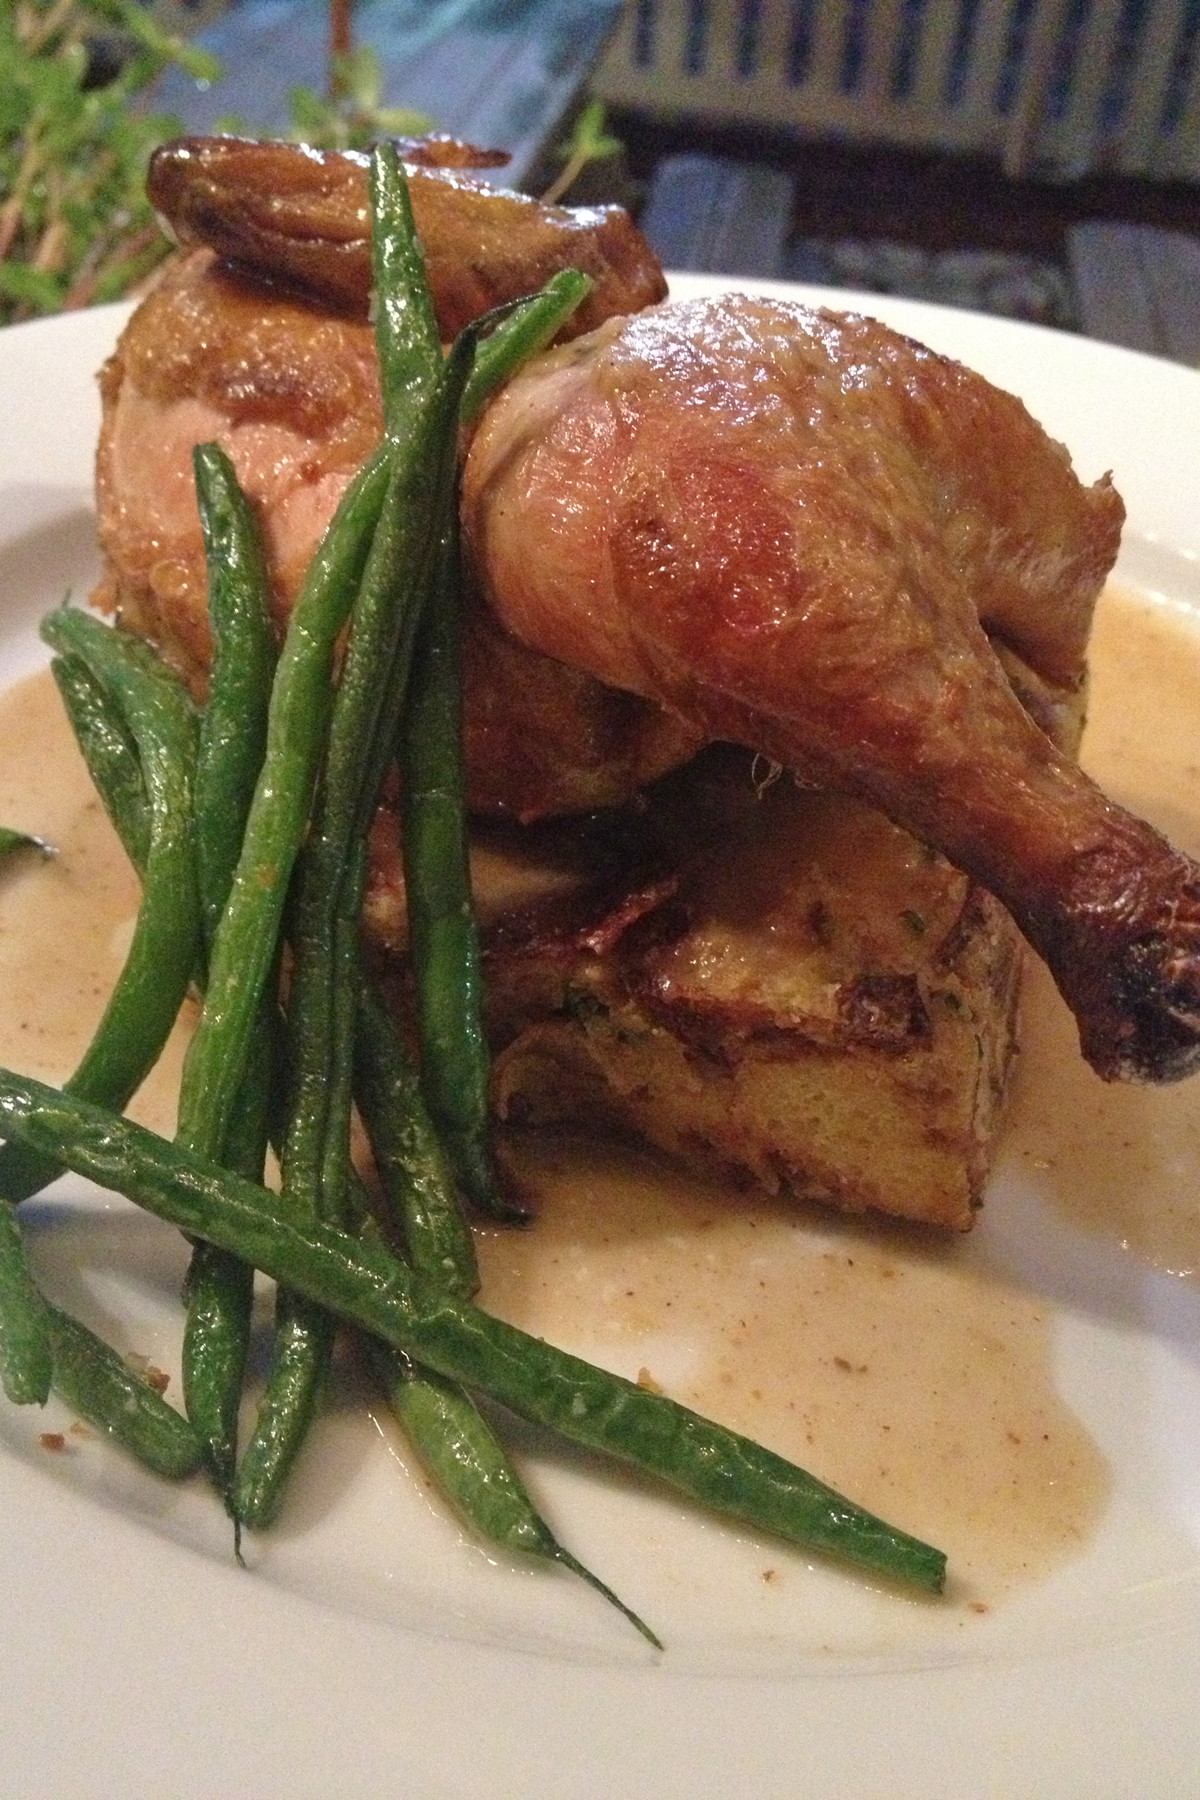 The Cornish hen with savory bread pudding and fresh green beans is one of several dinner entrées.